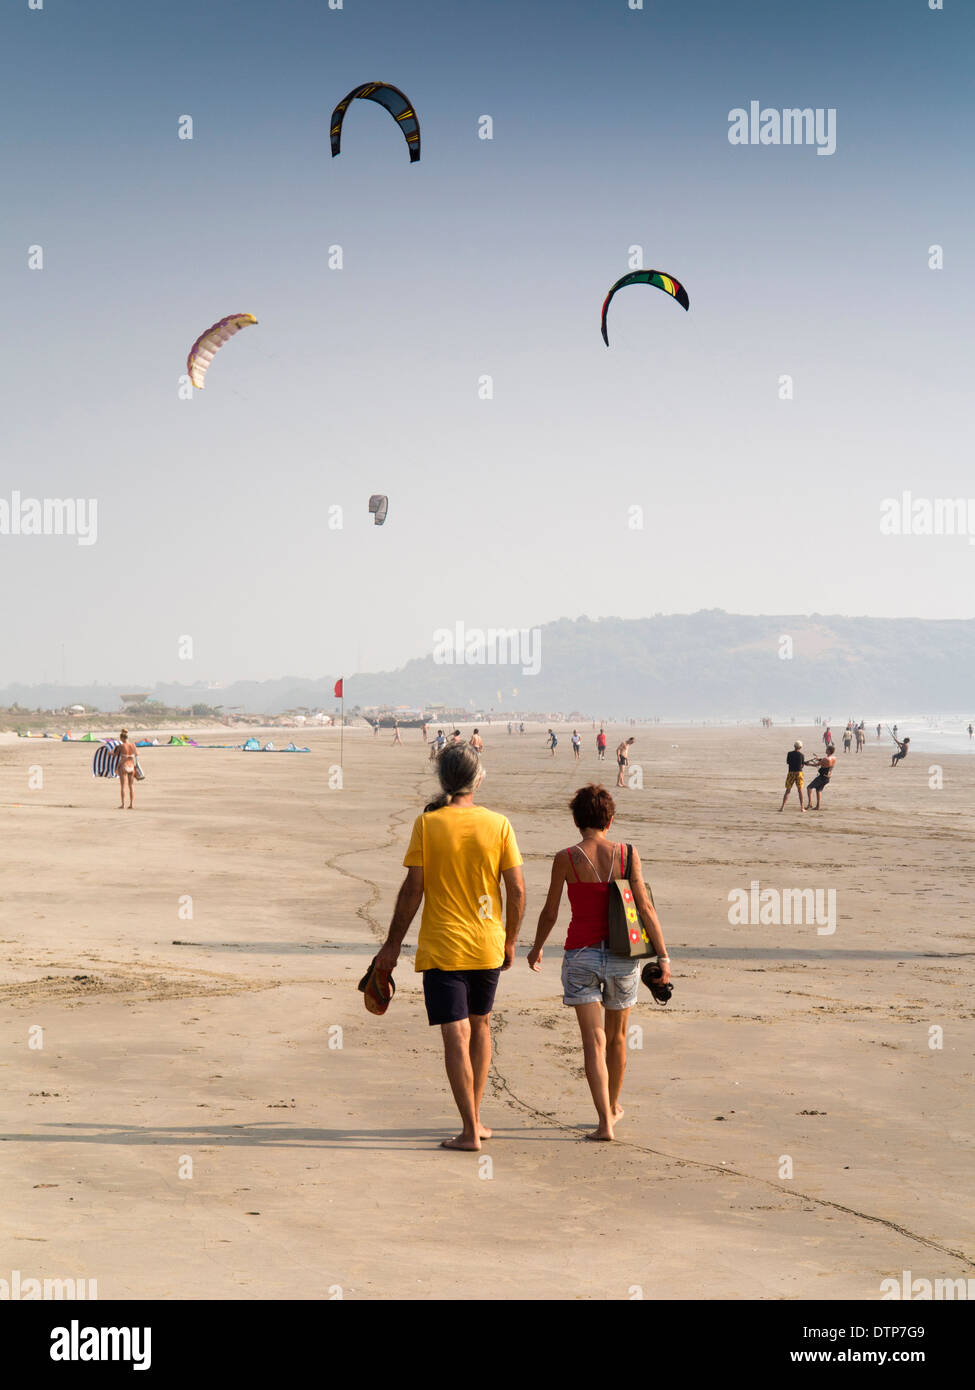 India, Goa, Morjim Beach, kitesurfers practicing and learning to handle kites on beach - Stock Image